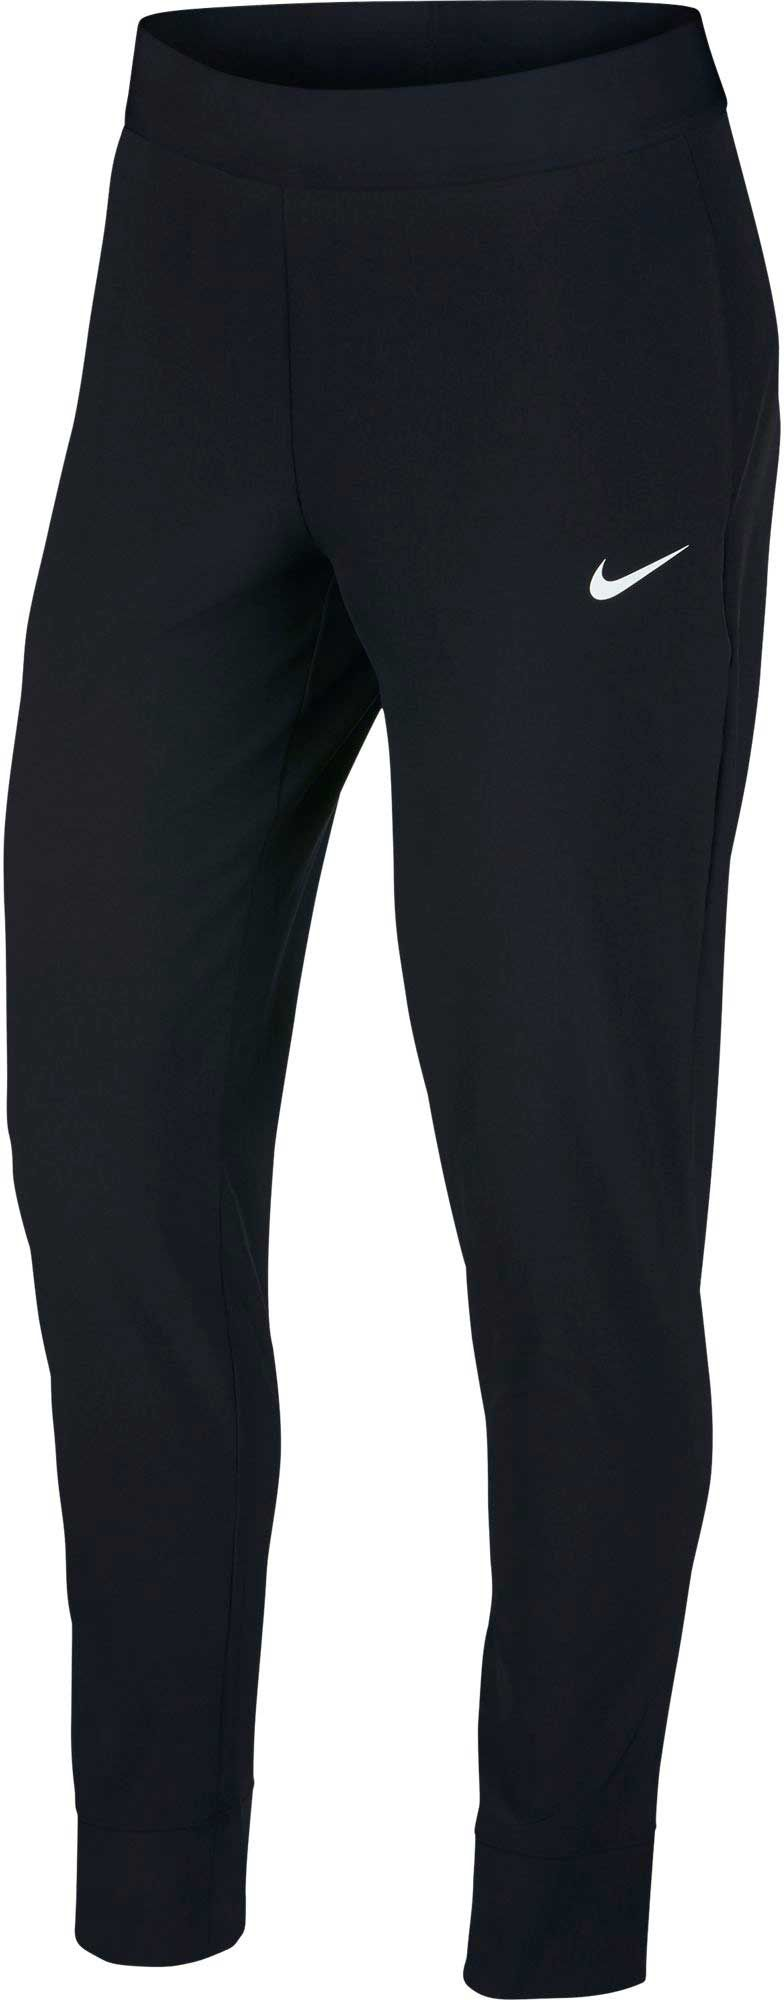 Nike Women's Bliss Victory Pants by Nike